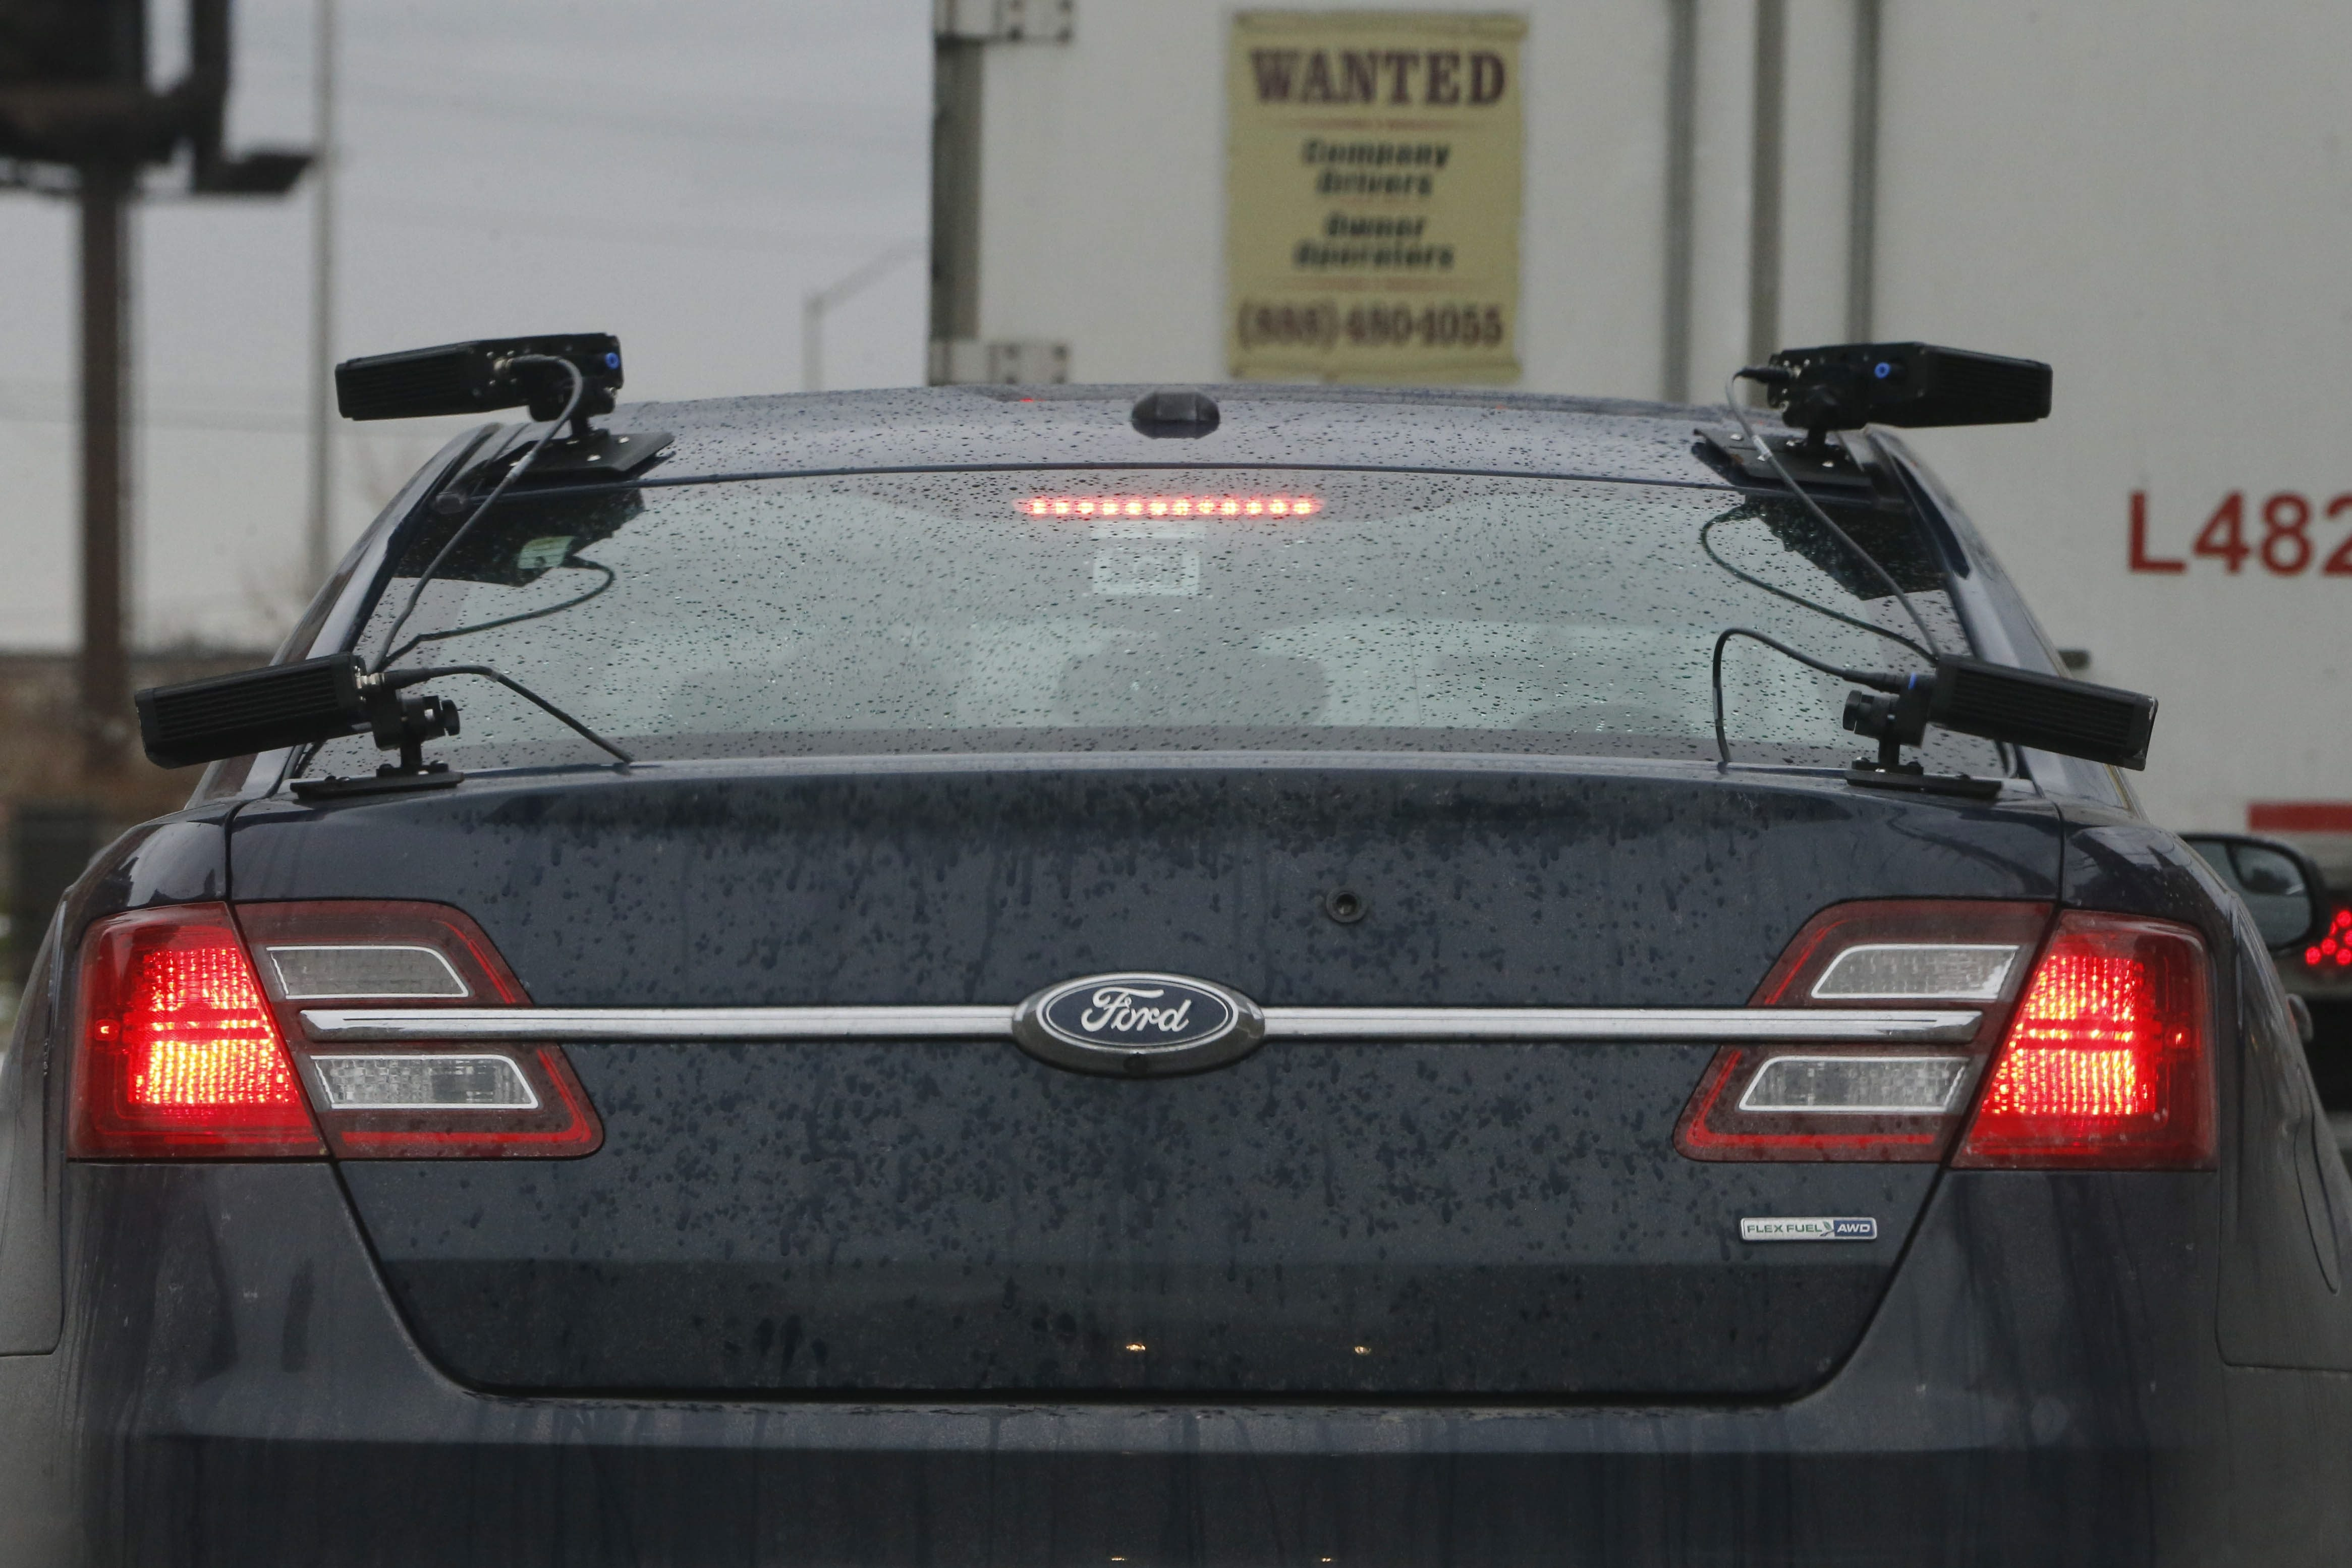 a vehicle outfitted with several license plate cameras derek gee buffalo news